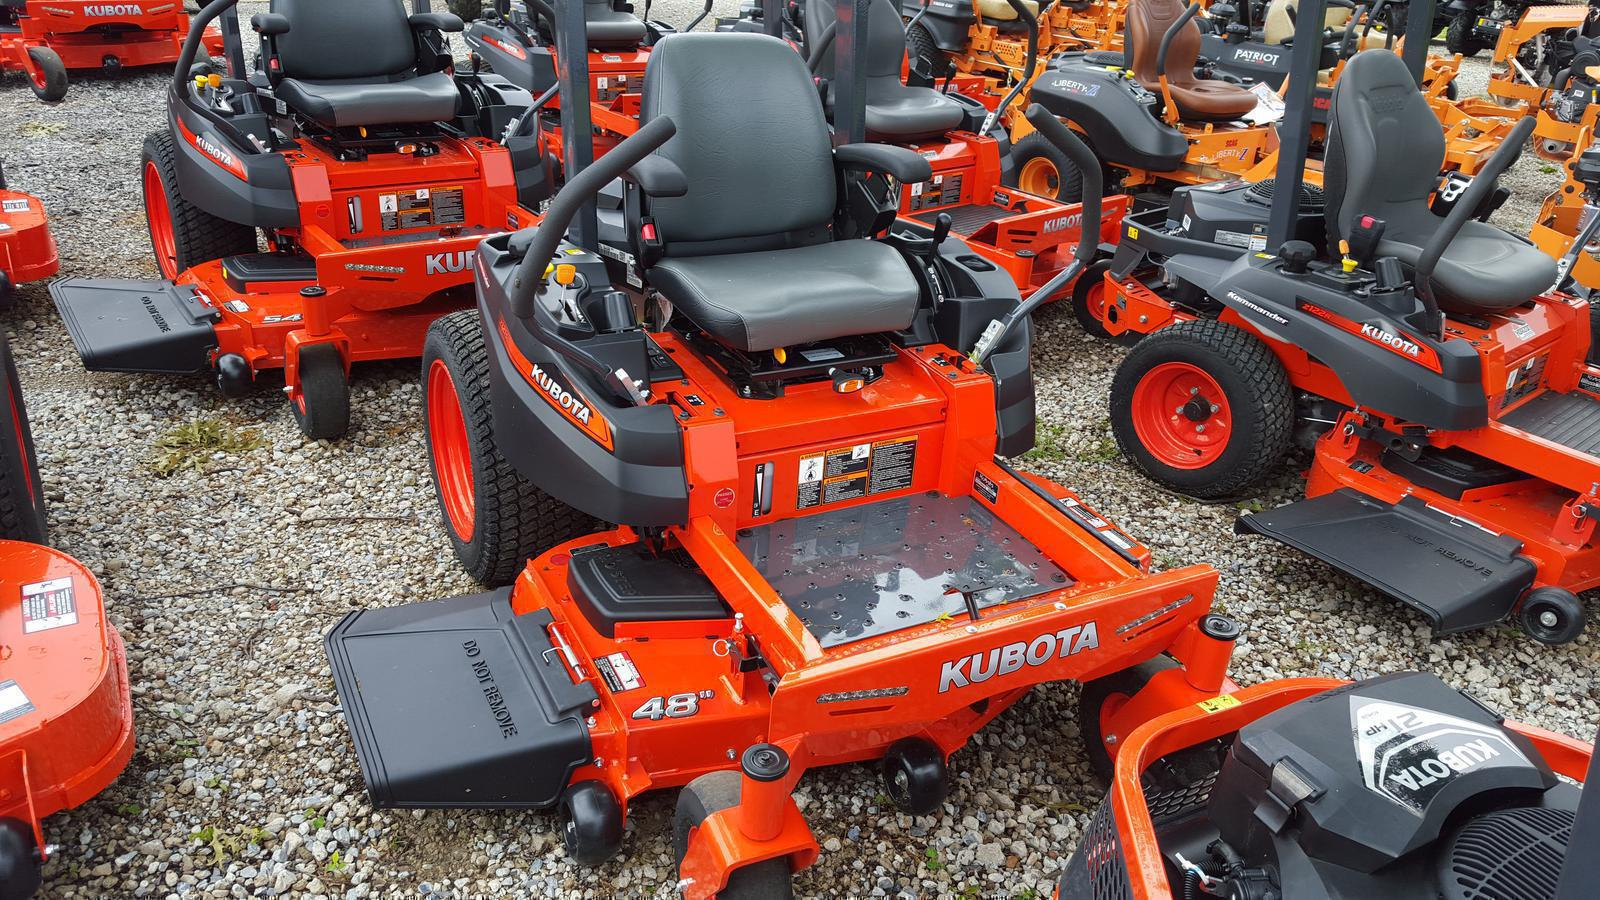 Kubota tractors for sale in kentucky - 2017 Kubota Z121s 48 For Sale In Hickory Ky Horizon Lawn And Tractor 270 856 4355